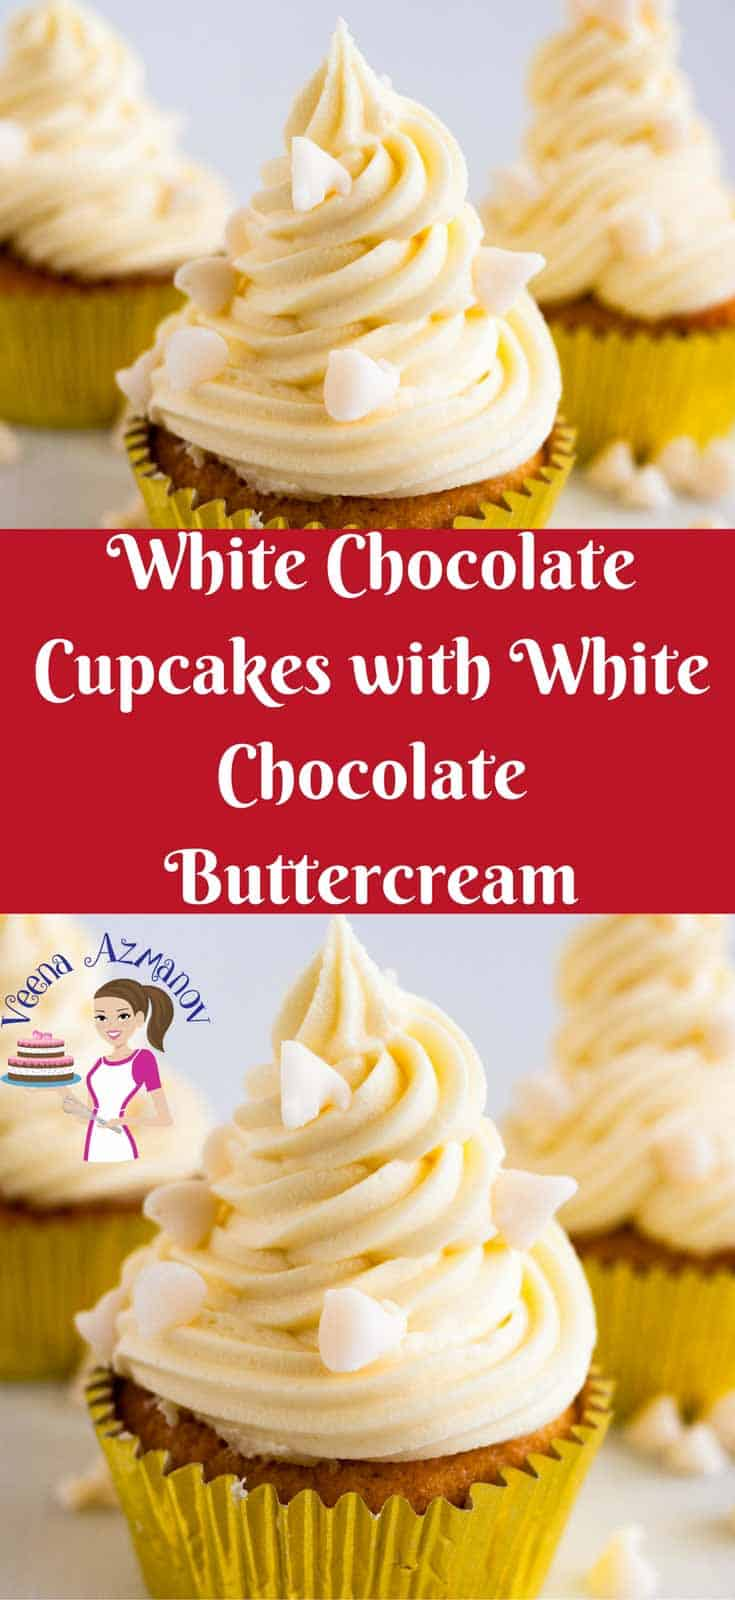 These moist white chocolate cupcakes are infused with the of sweet white chocolate goodness. Light and fluffy with a soft, tender but flaky crumb. Dressed with a rich soft white chocolate buttercream and sprinkled with more white chocolate chips for that added luxury. These are bound to be your new favorite. #cupcakes #whitechocolate #baking #buttercream #frosting #whitechocolatecupcakes #whitechocolatefrosting